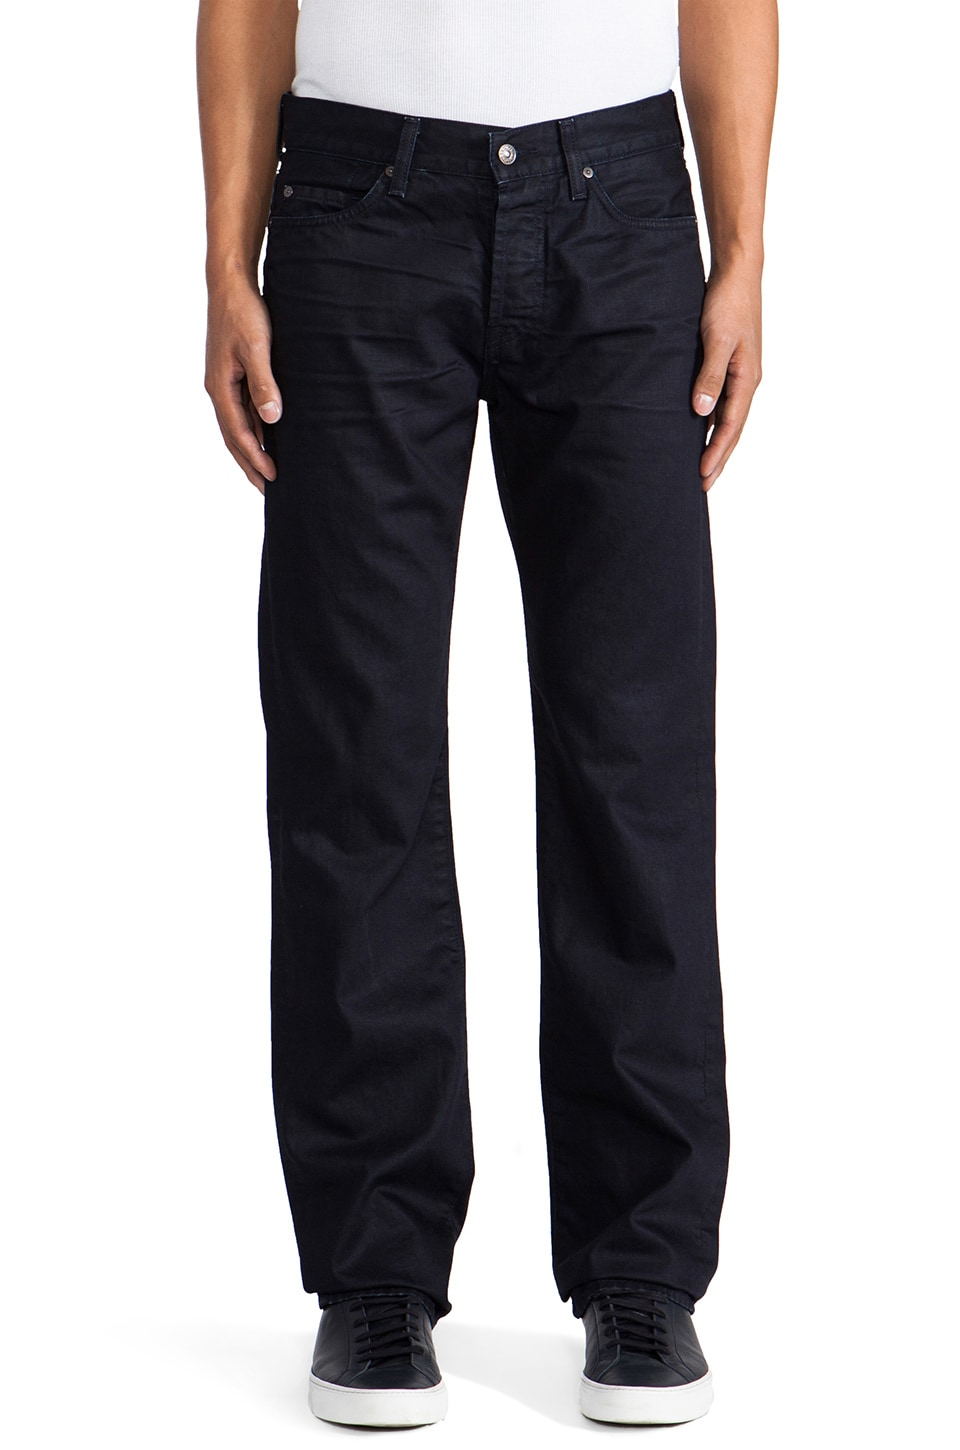 7 For All Mankind Standard in Nighttime Sky